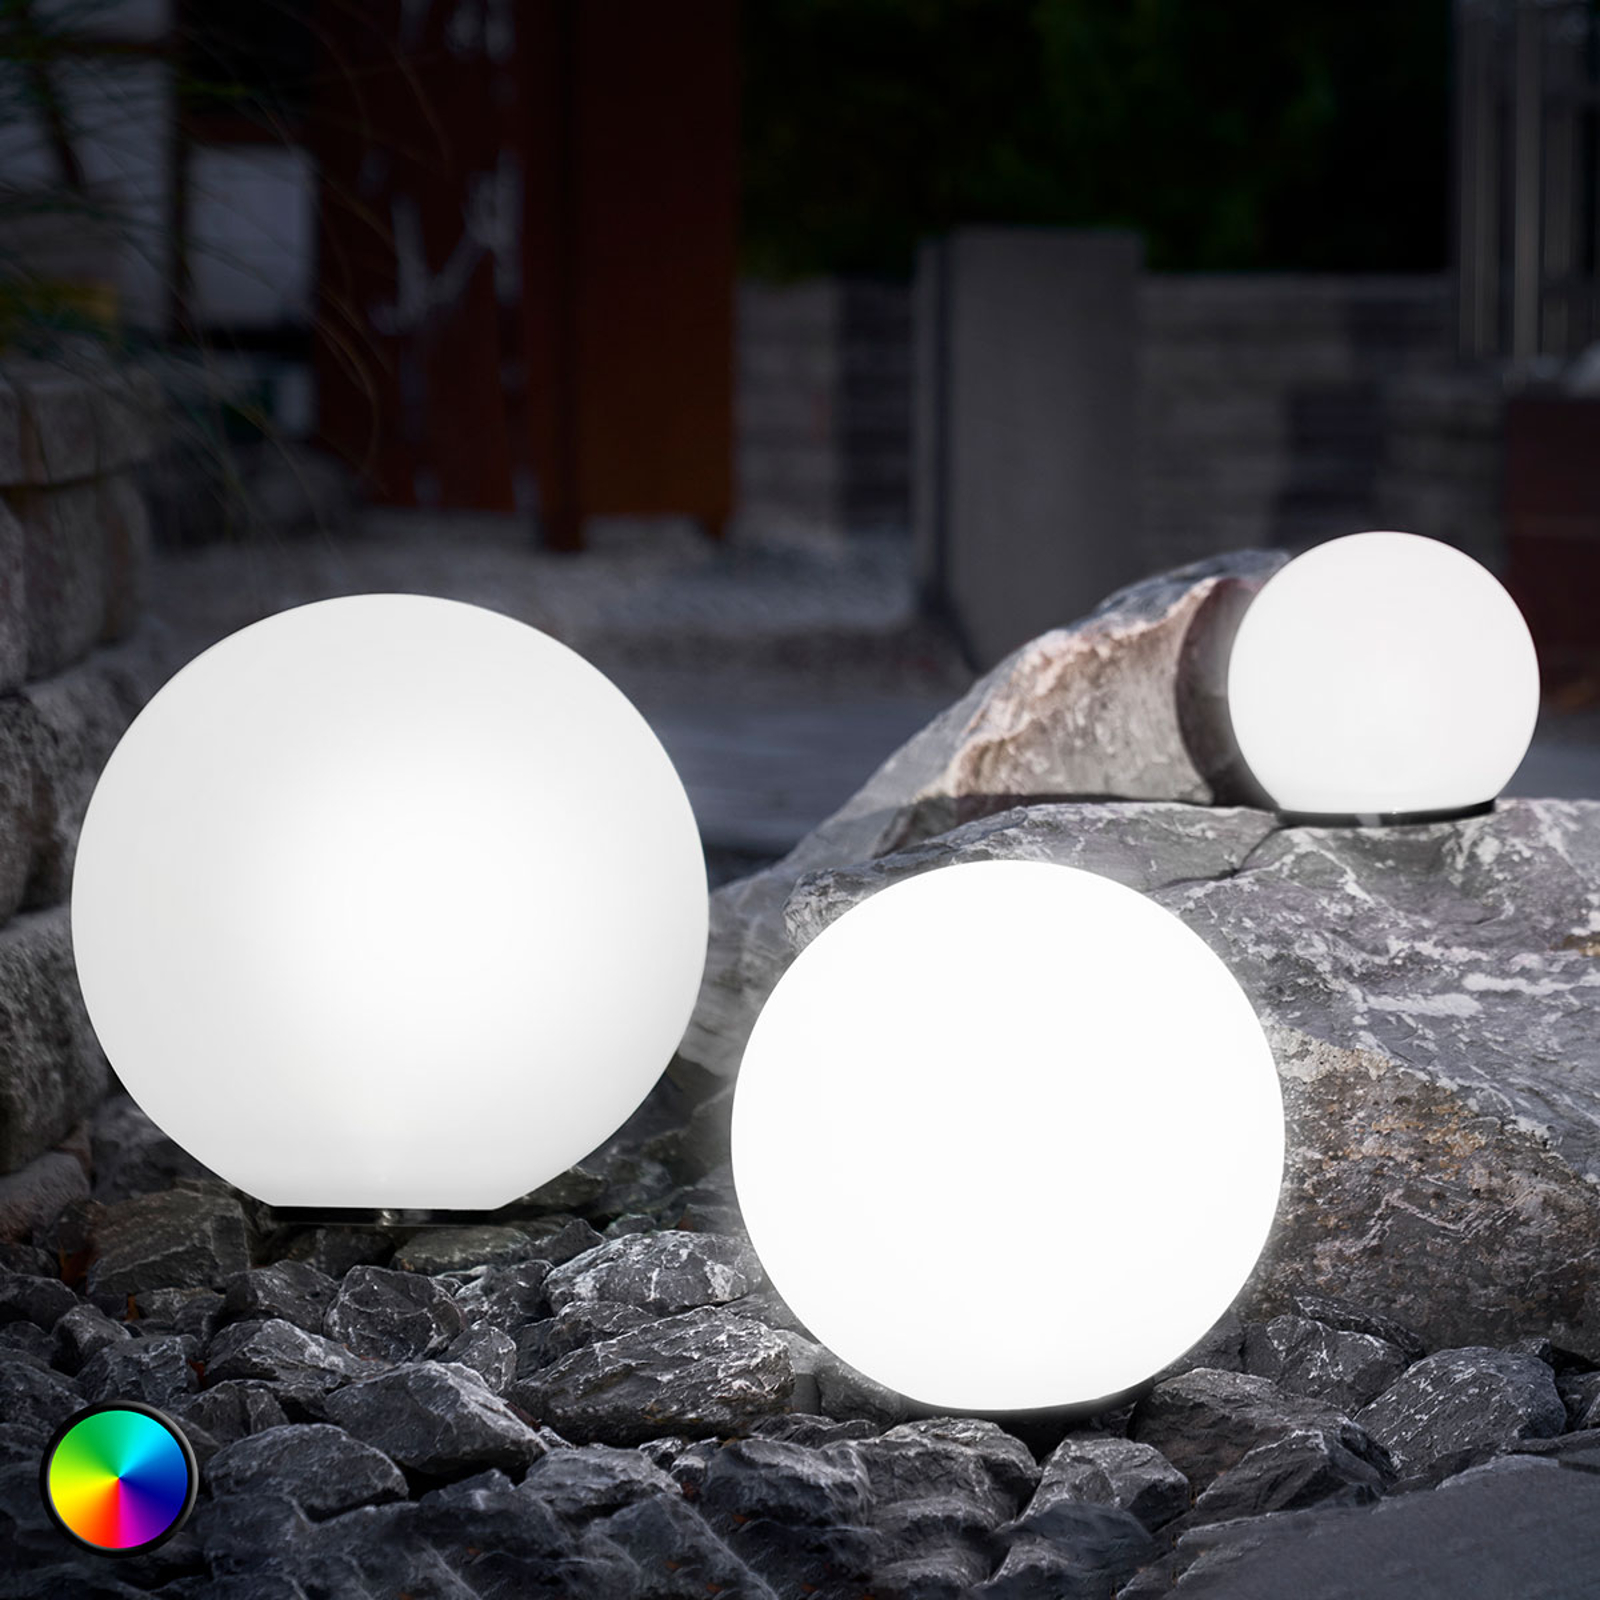 Set of 3 LED solar balls, colour change function_3012559_1